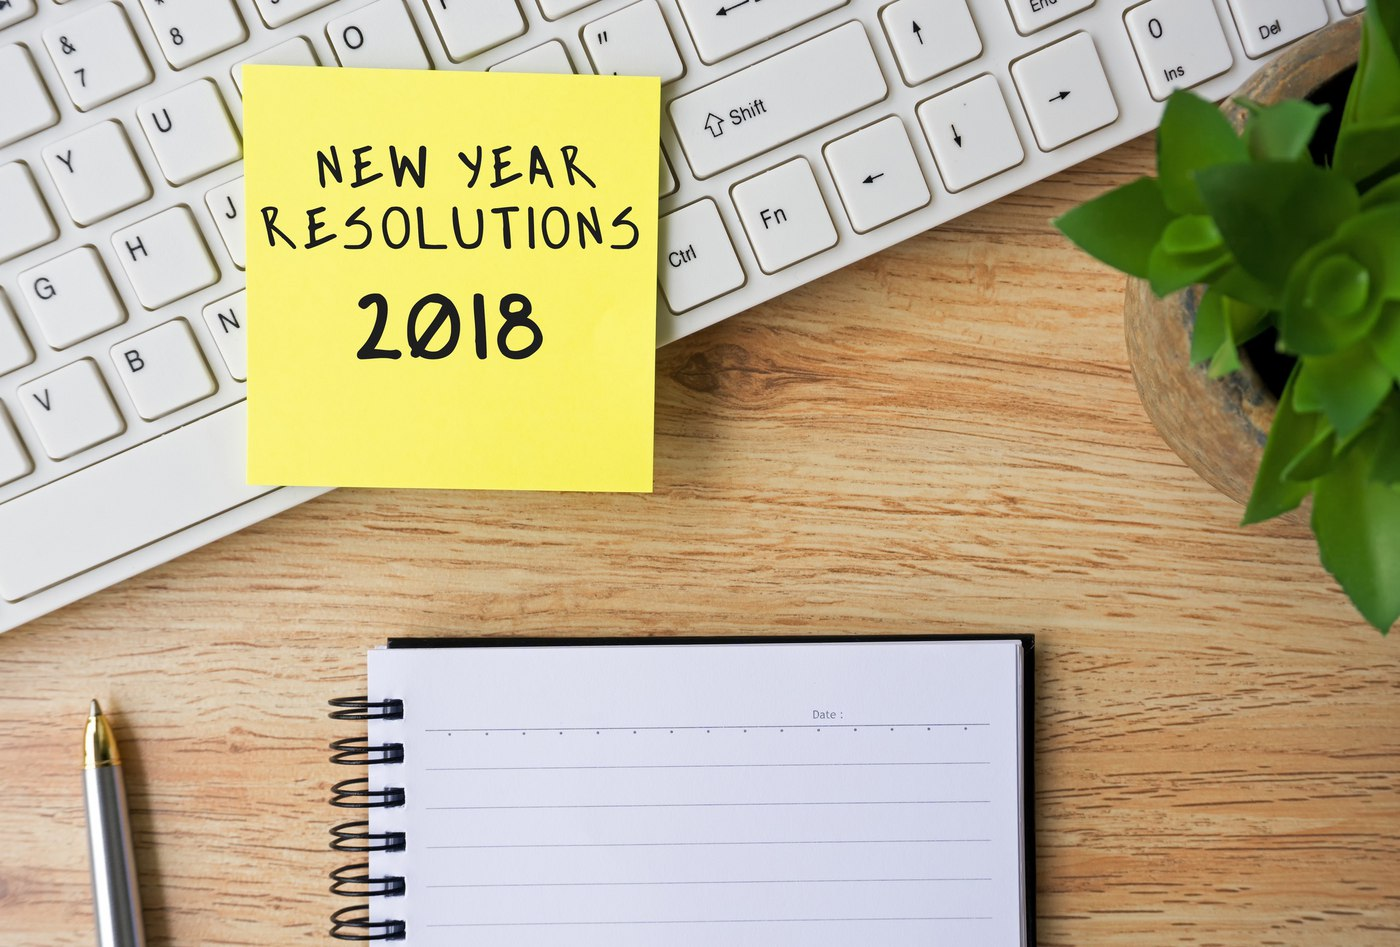 CISO's New Year's Resolutions